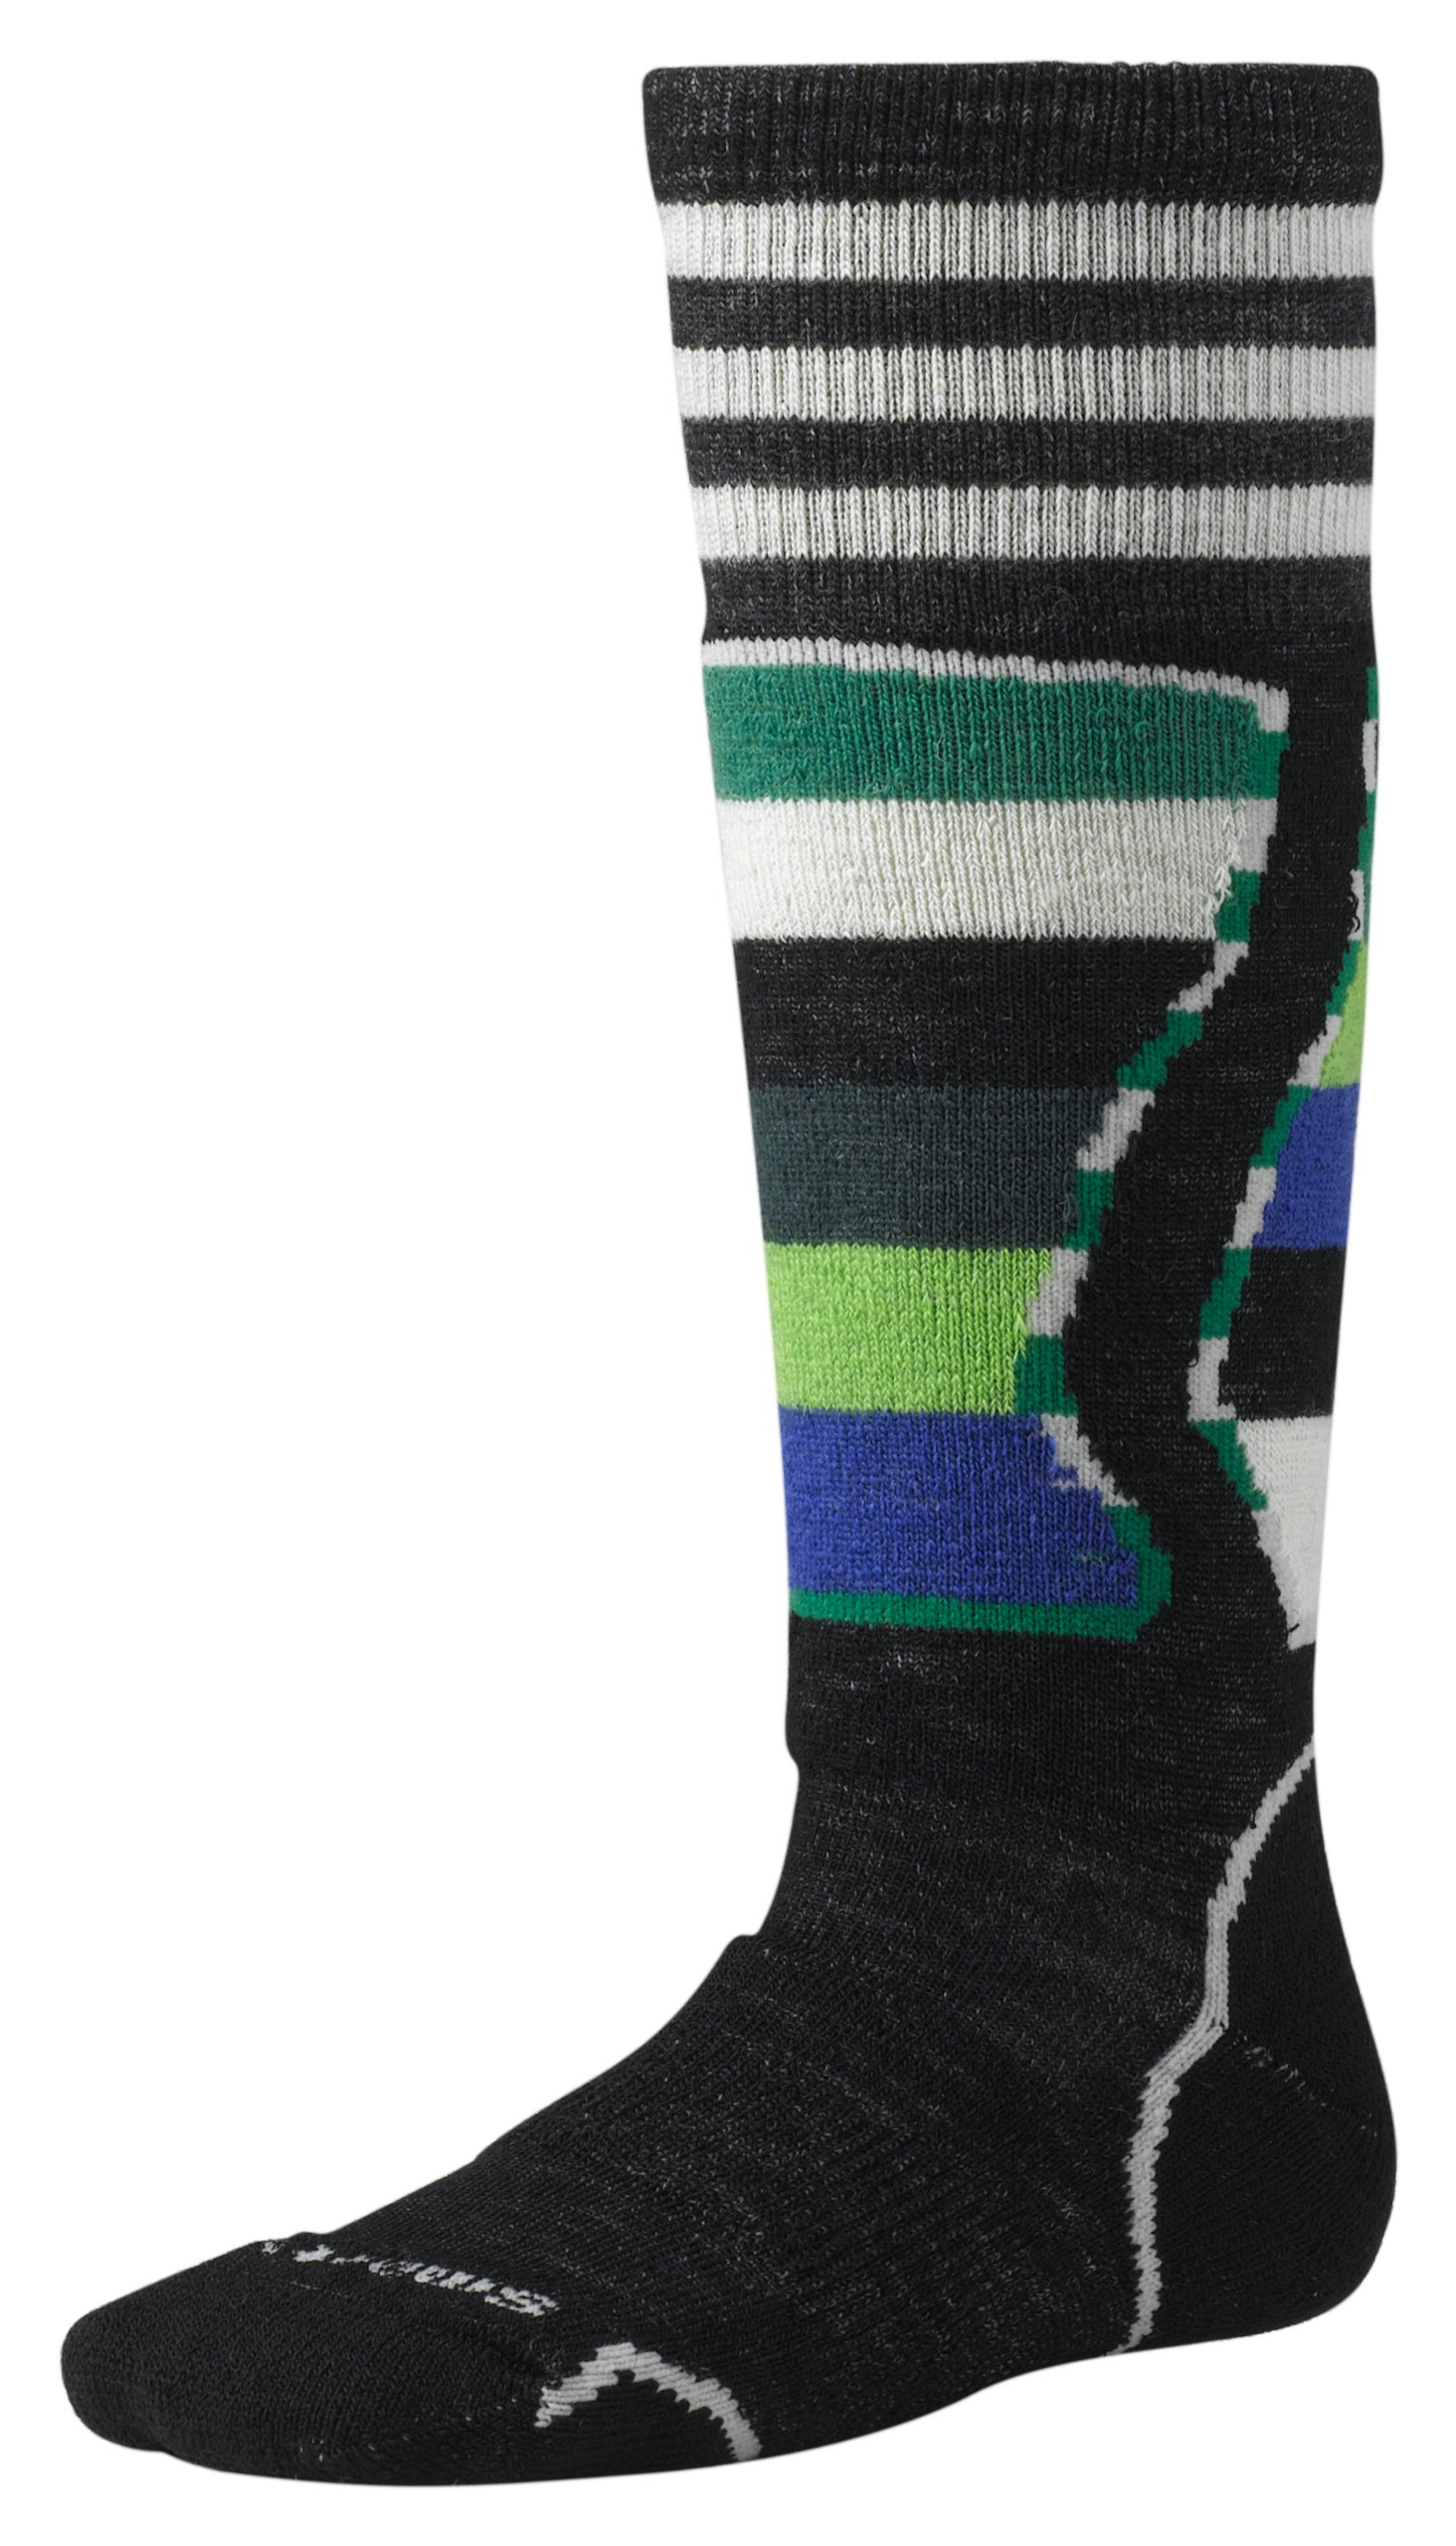 Smartwool Boys Snowboard Sock Black S -Kids